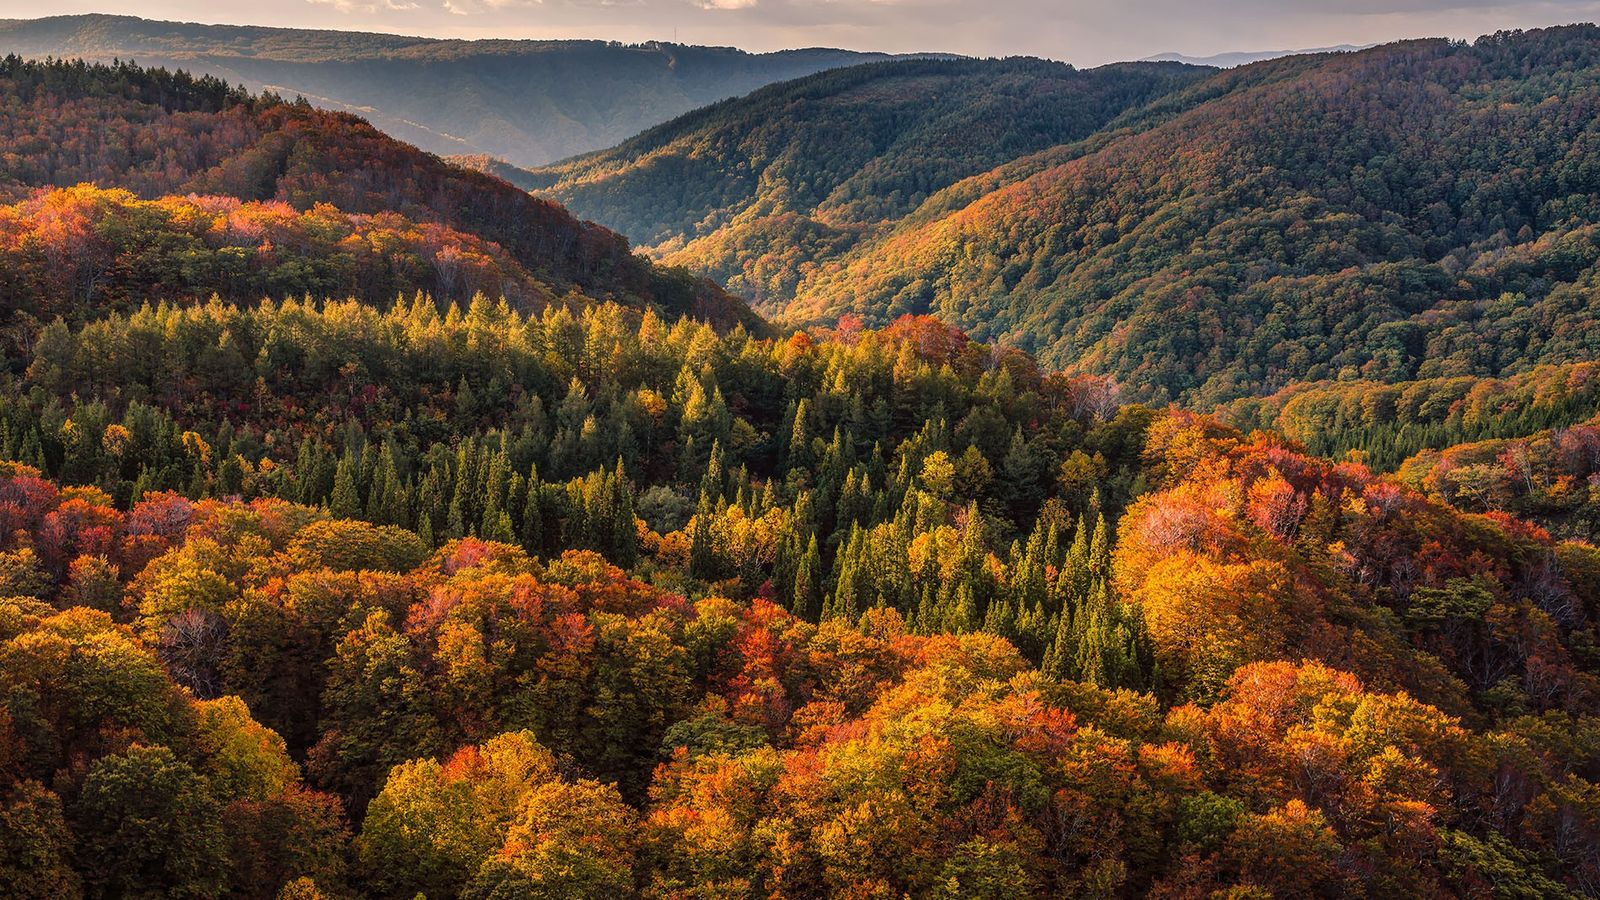 Tohoku's woodland turns vivid shades of russets and golds in autumn.